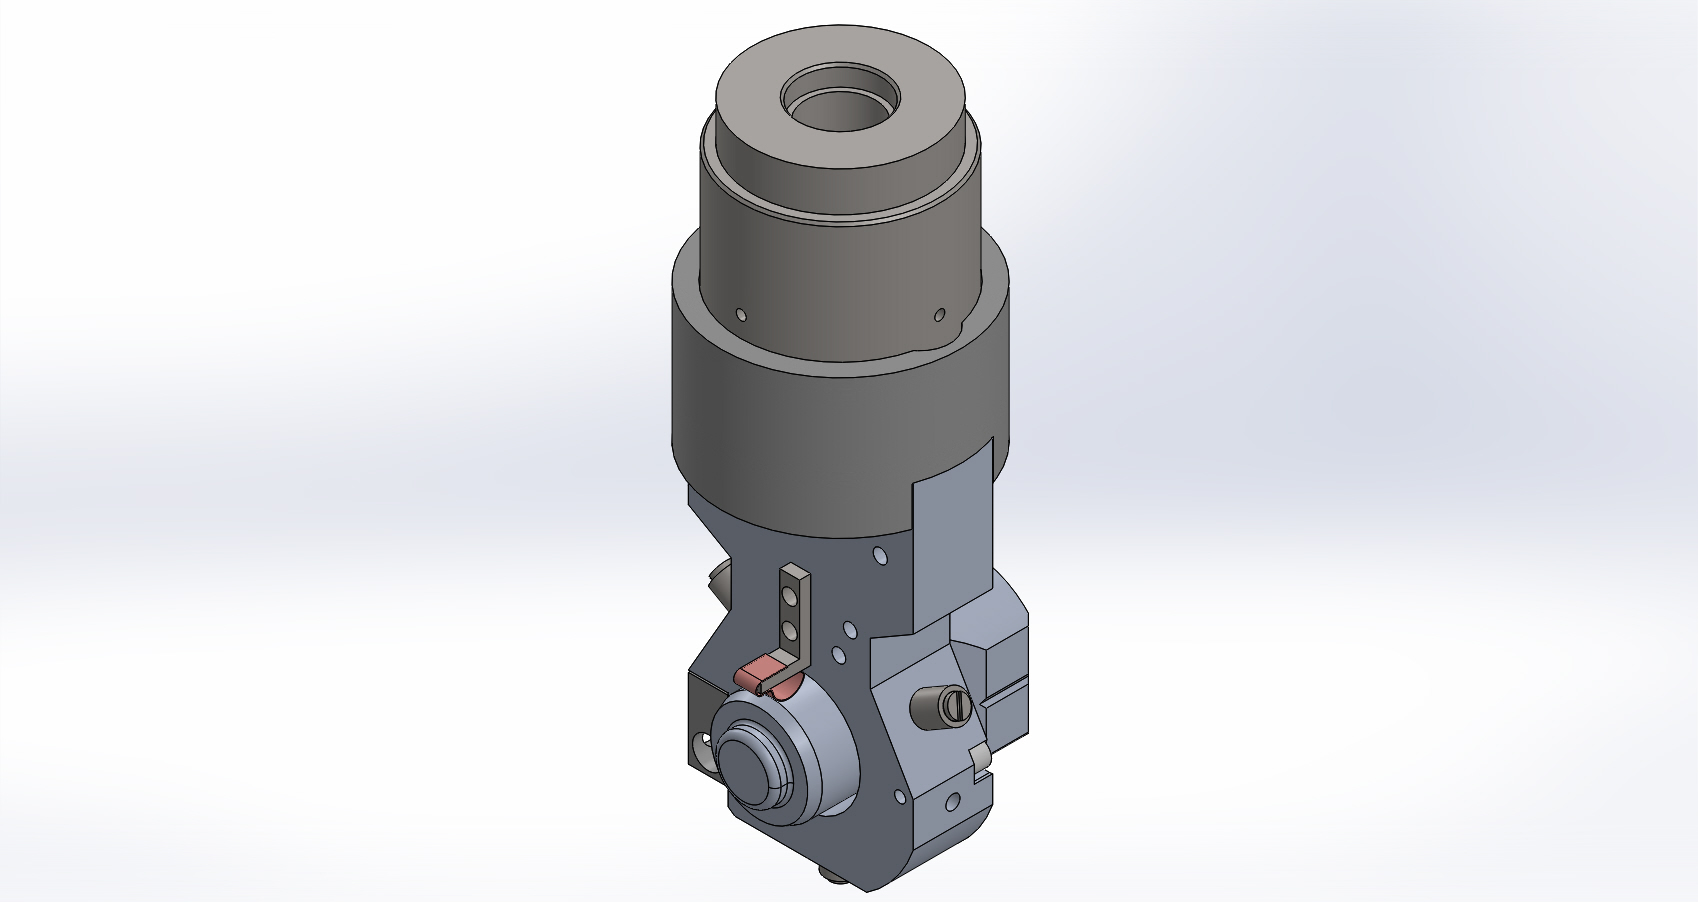 Coating Mount CAD Assembly